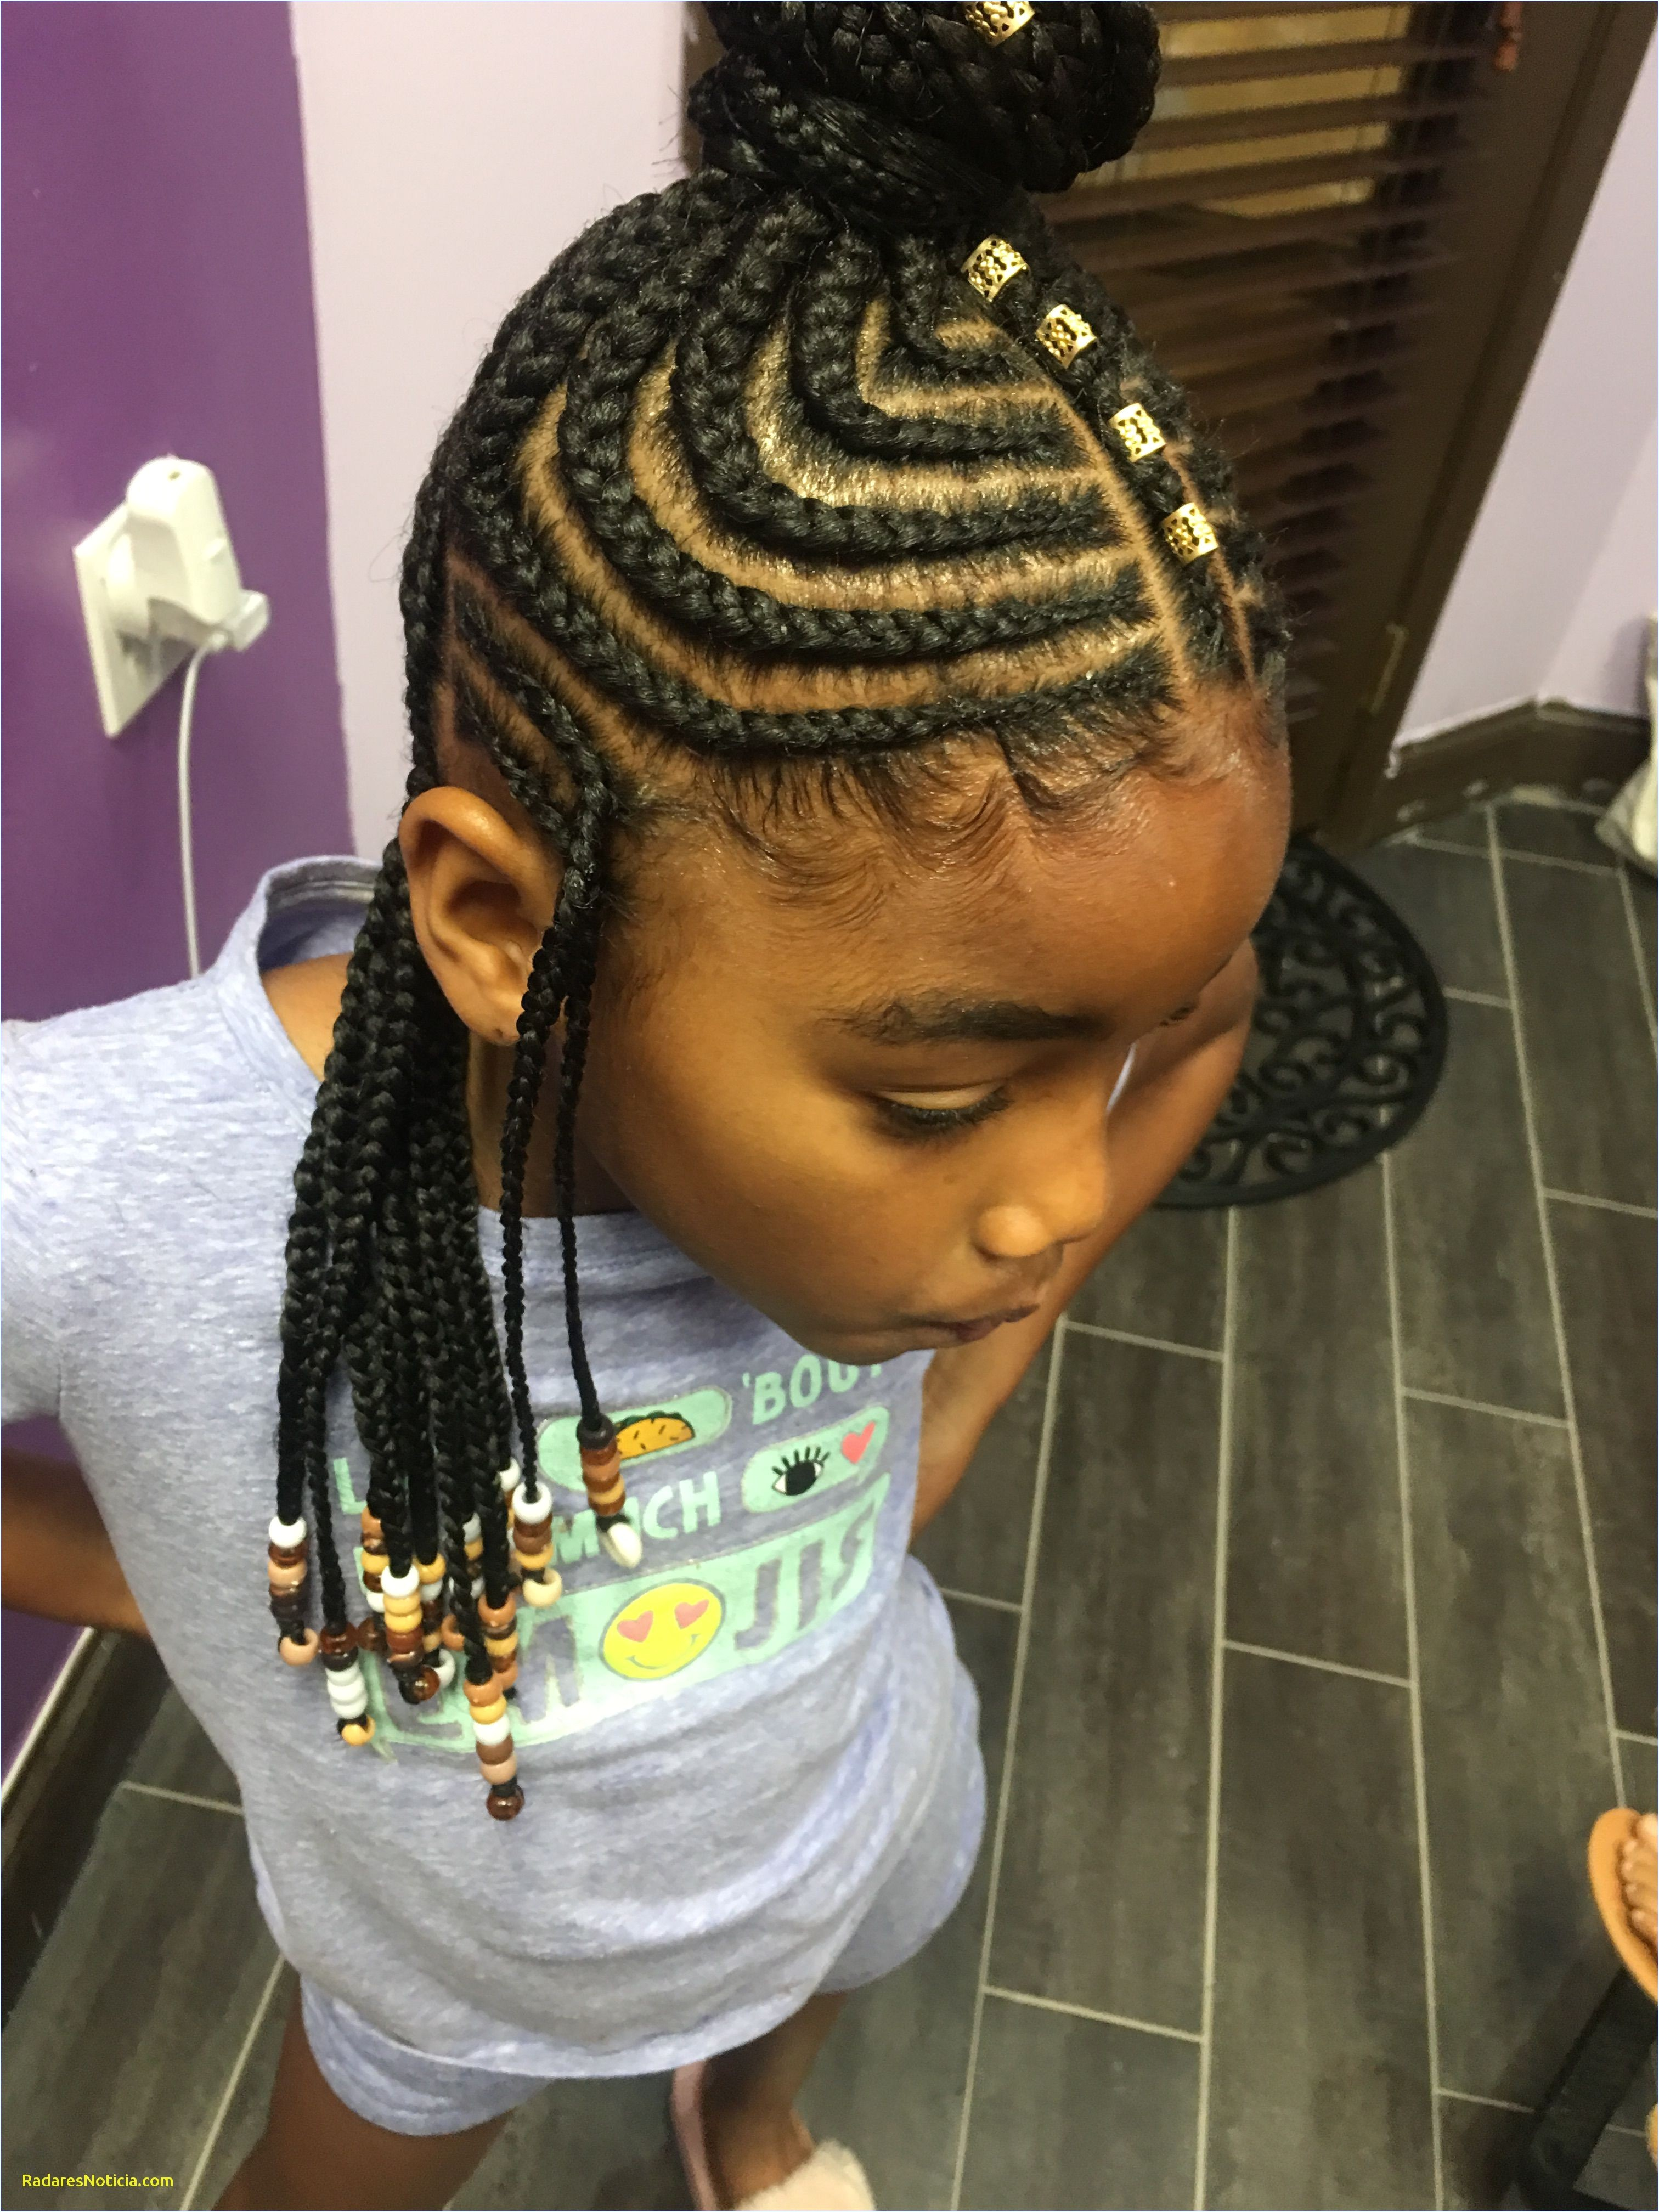 Lil Girl Braided Hairstyles with Beads 9 Best Little Girl Braided Hairstyles with Beads